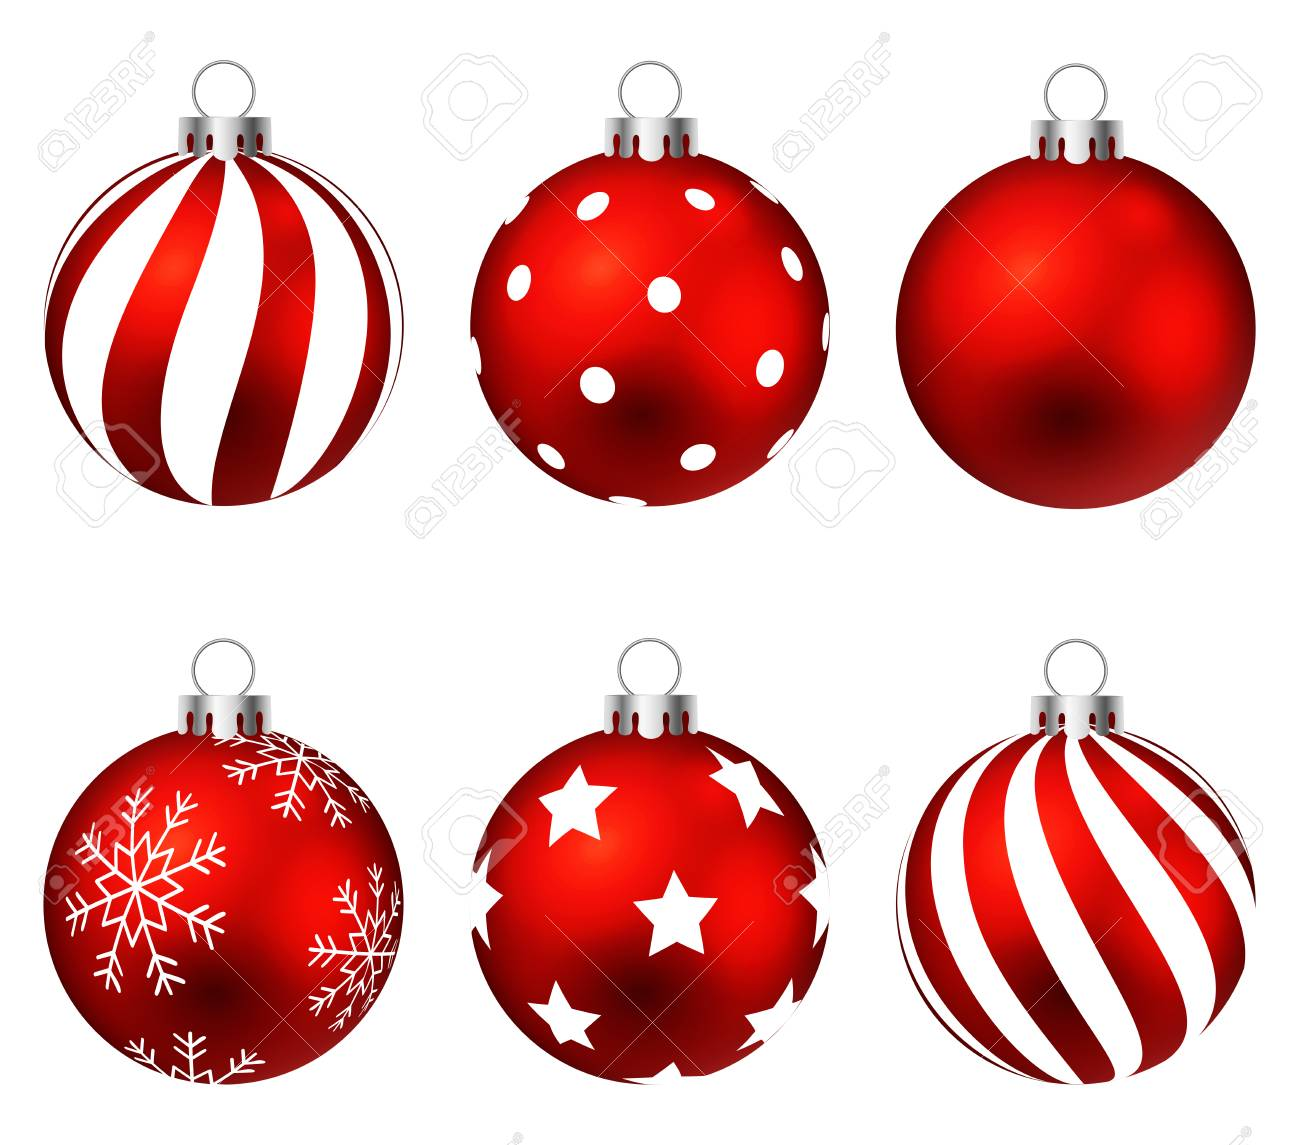 Red Christmas Balls On Gift Bows Isolated On White Set Vector